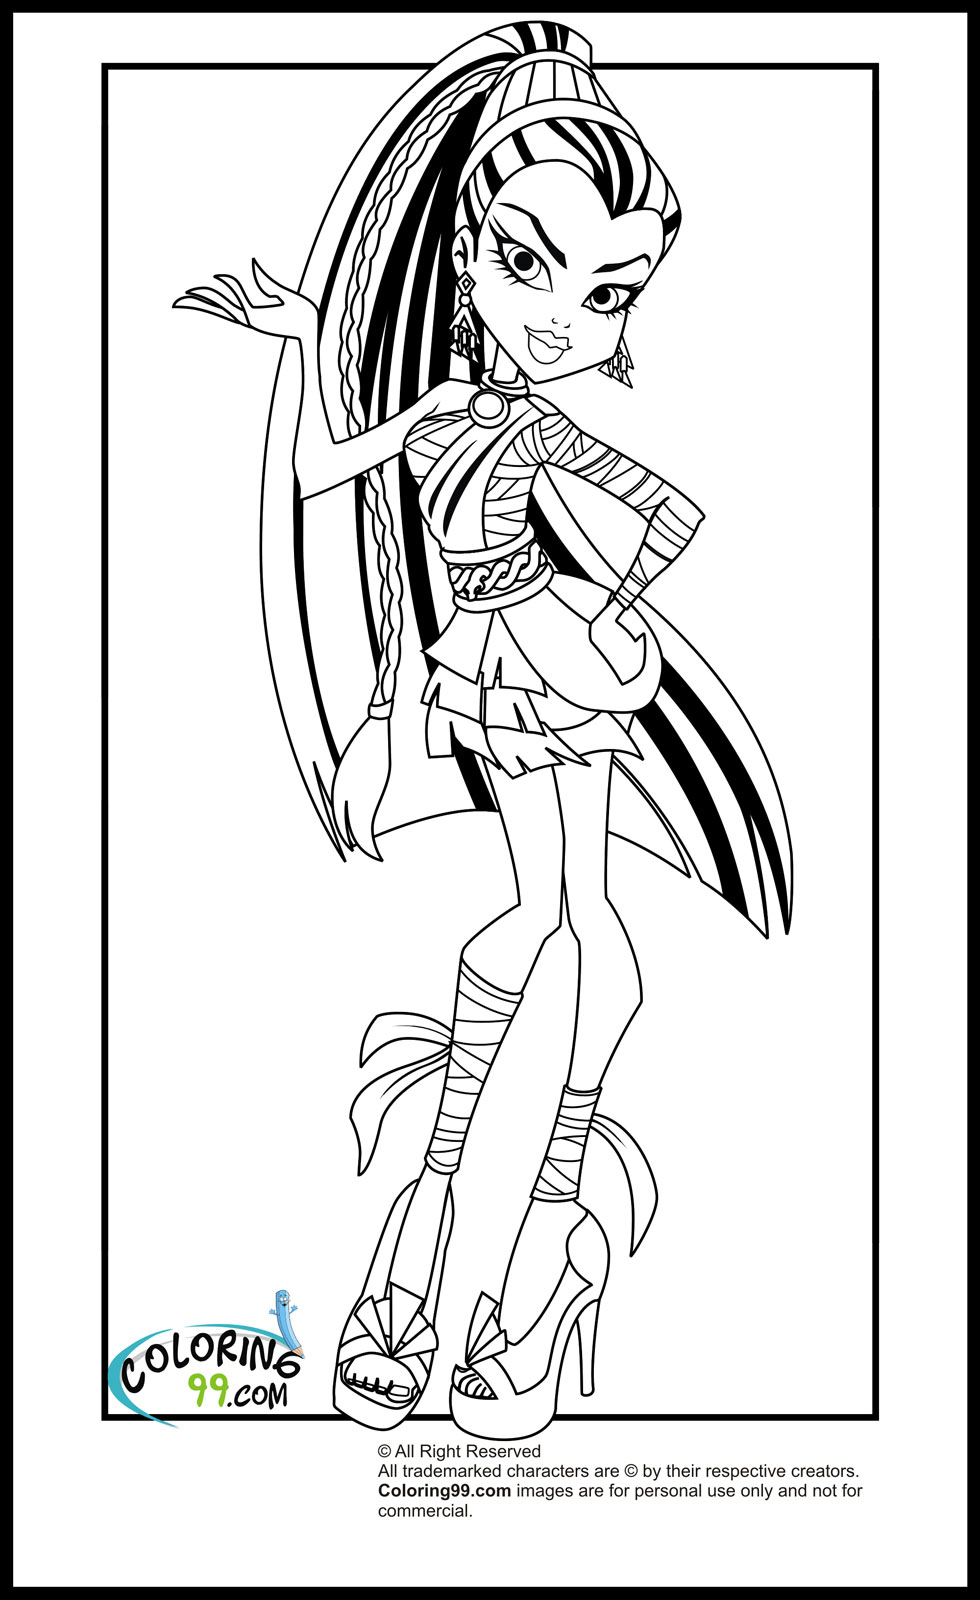 coloring pages monster high värityskuva monster high coloring pages team colors monster coloring pages värityskuva high